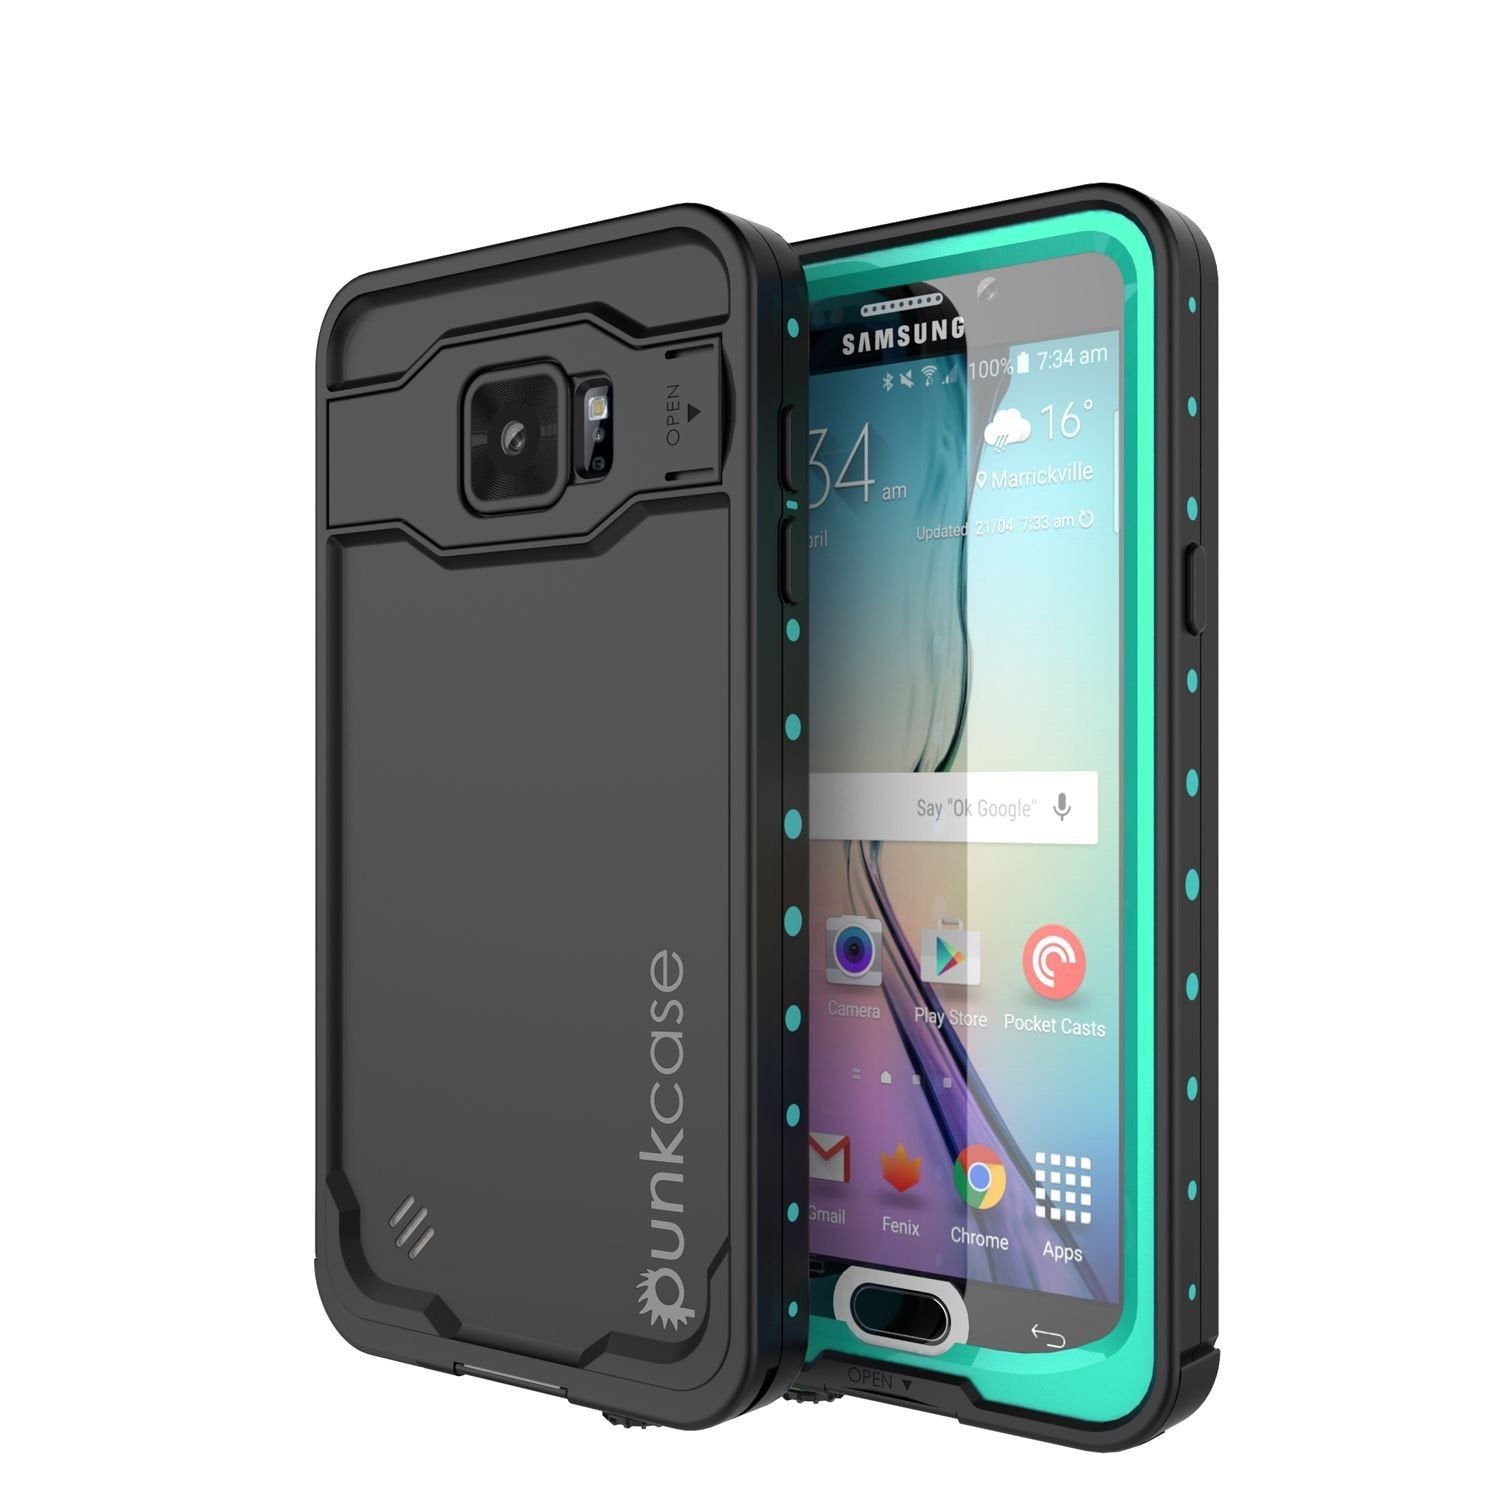 Galaxy Note 5 Waterproof Case, Punkcase StudStar Teal Shock/Dirt/Snow Proof | Lifetime Warranty